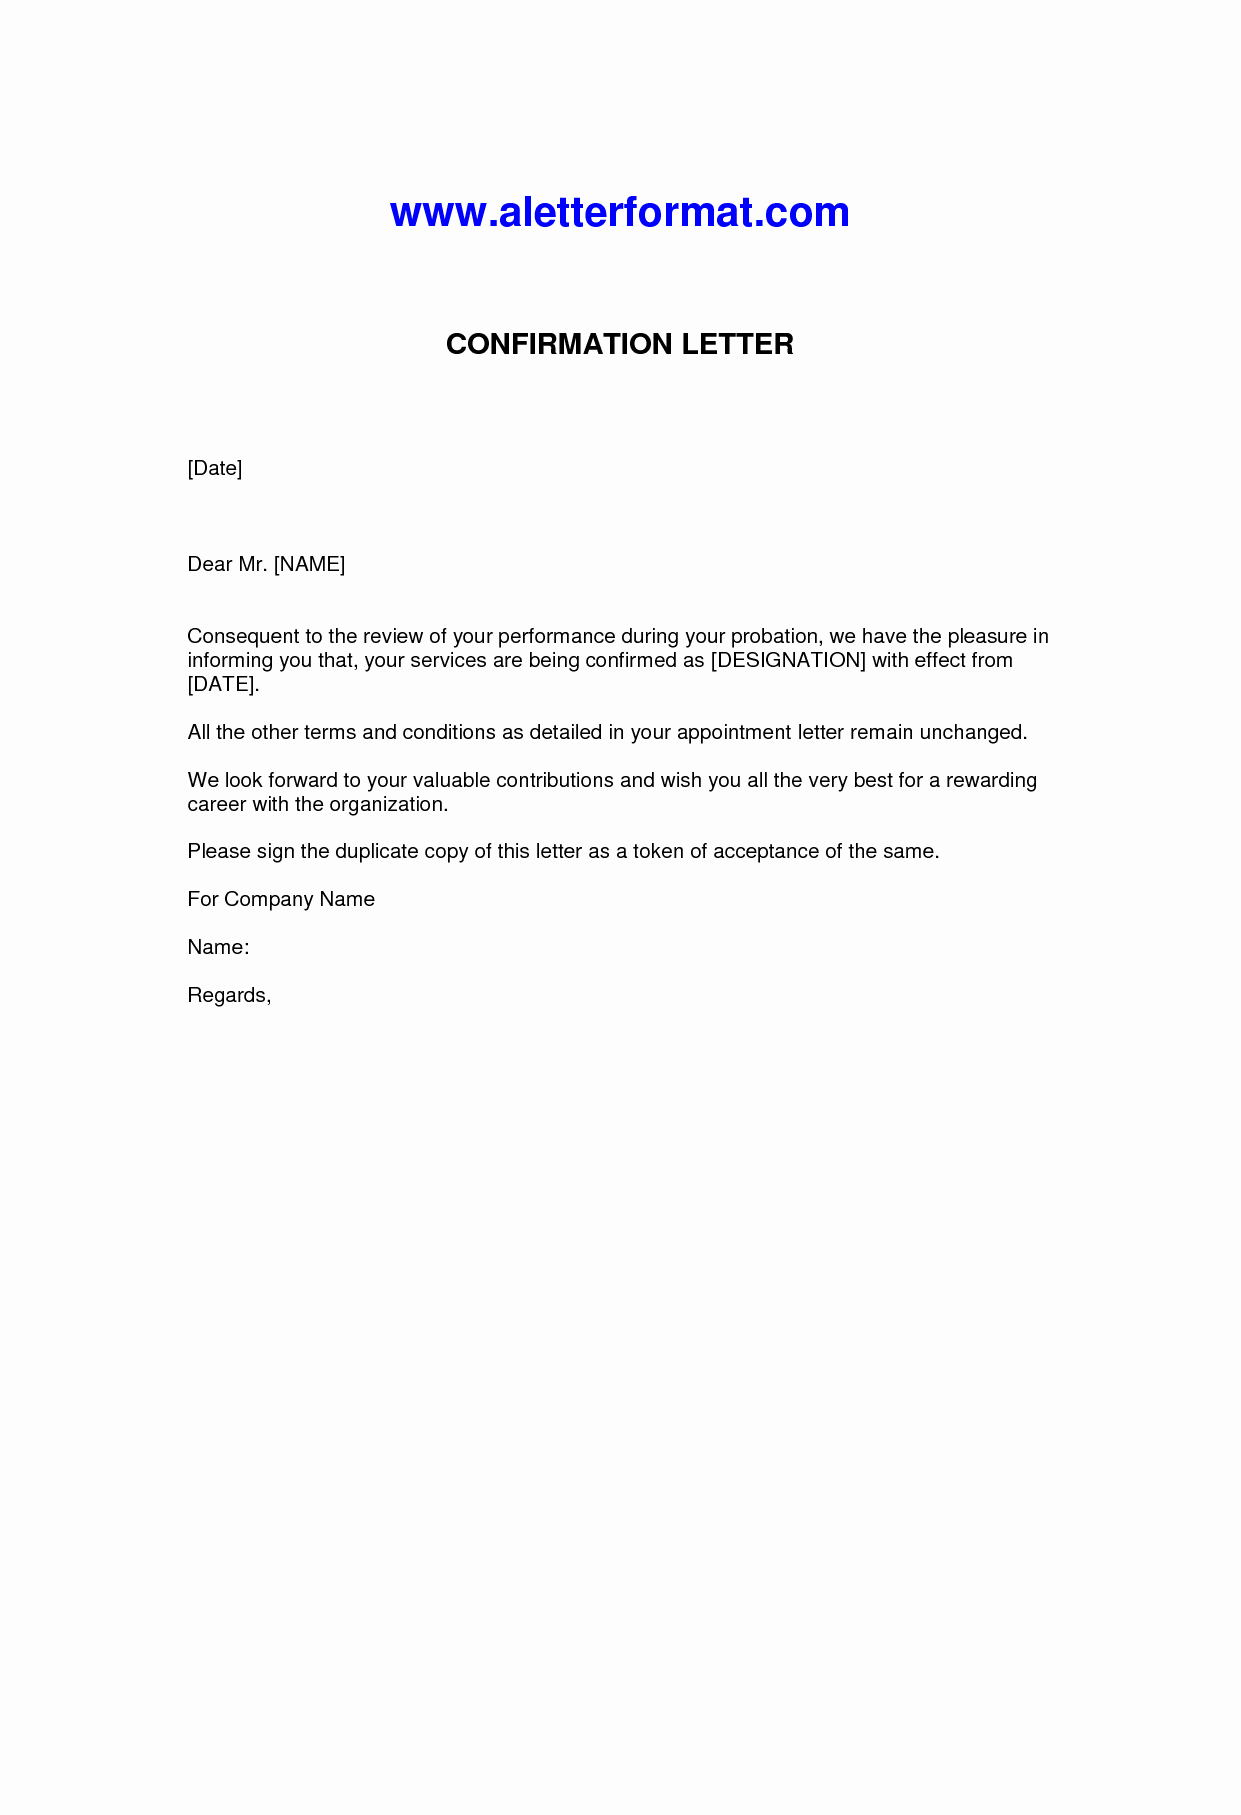 Sample Letter Of Employement New Letter Confirmation Employment